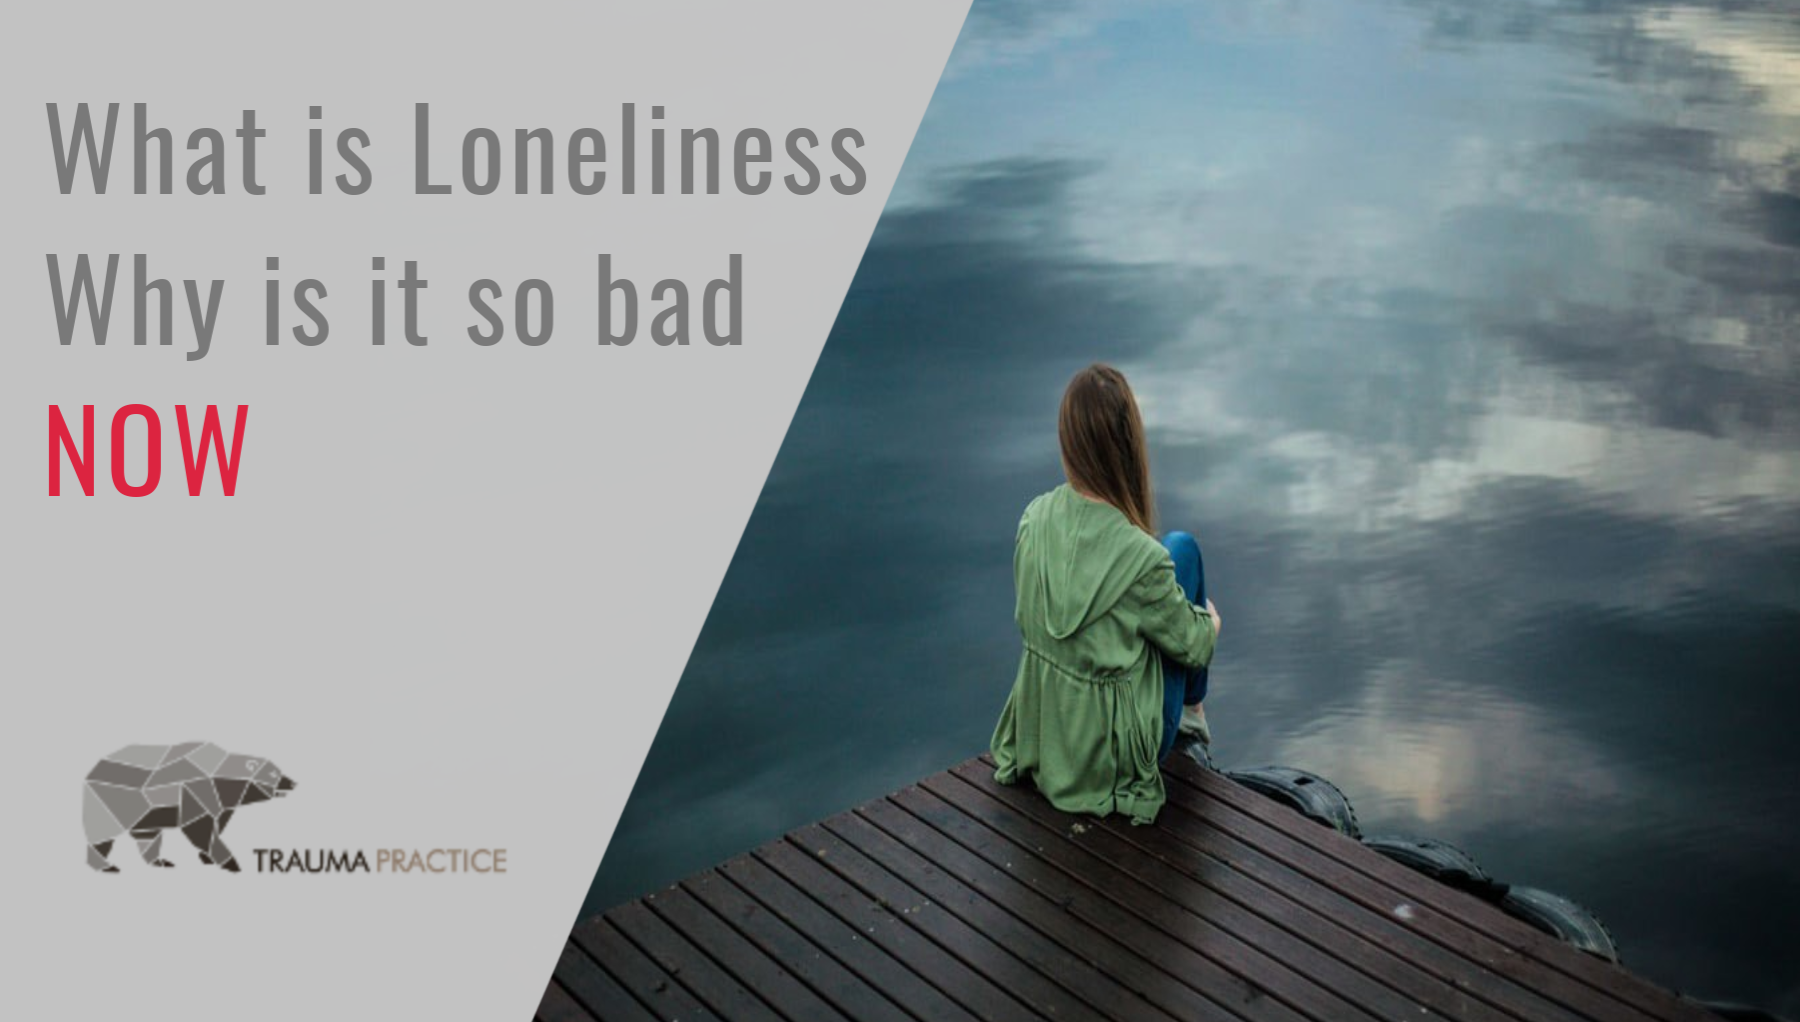 What is loneliness?